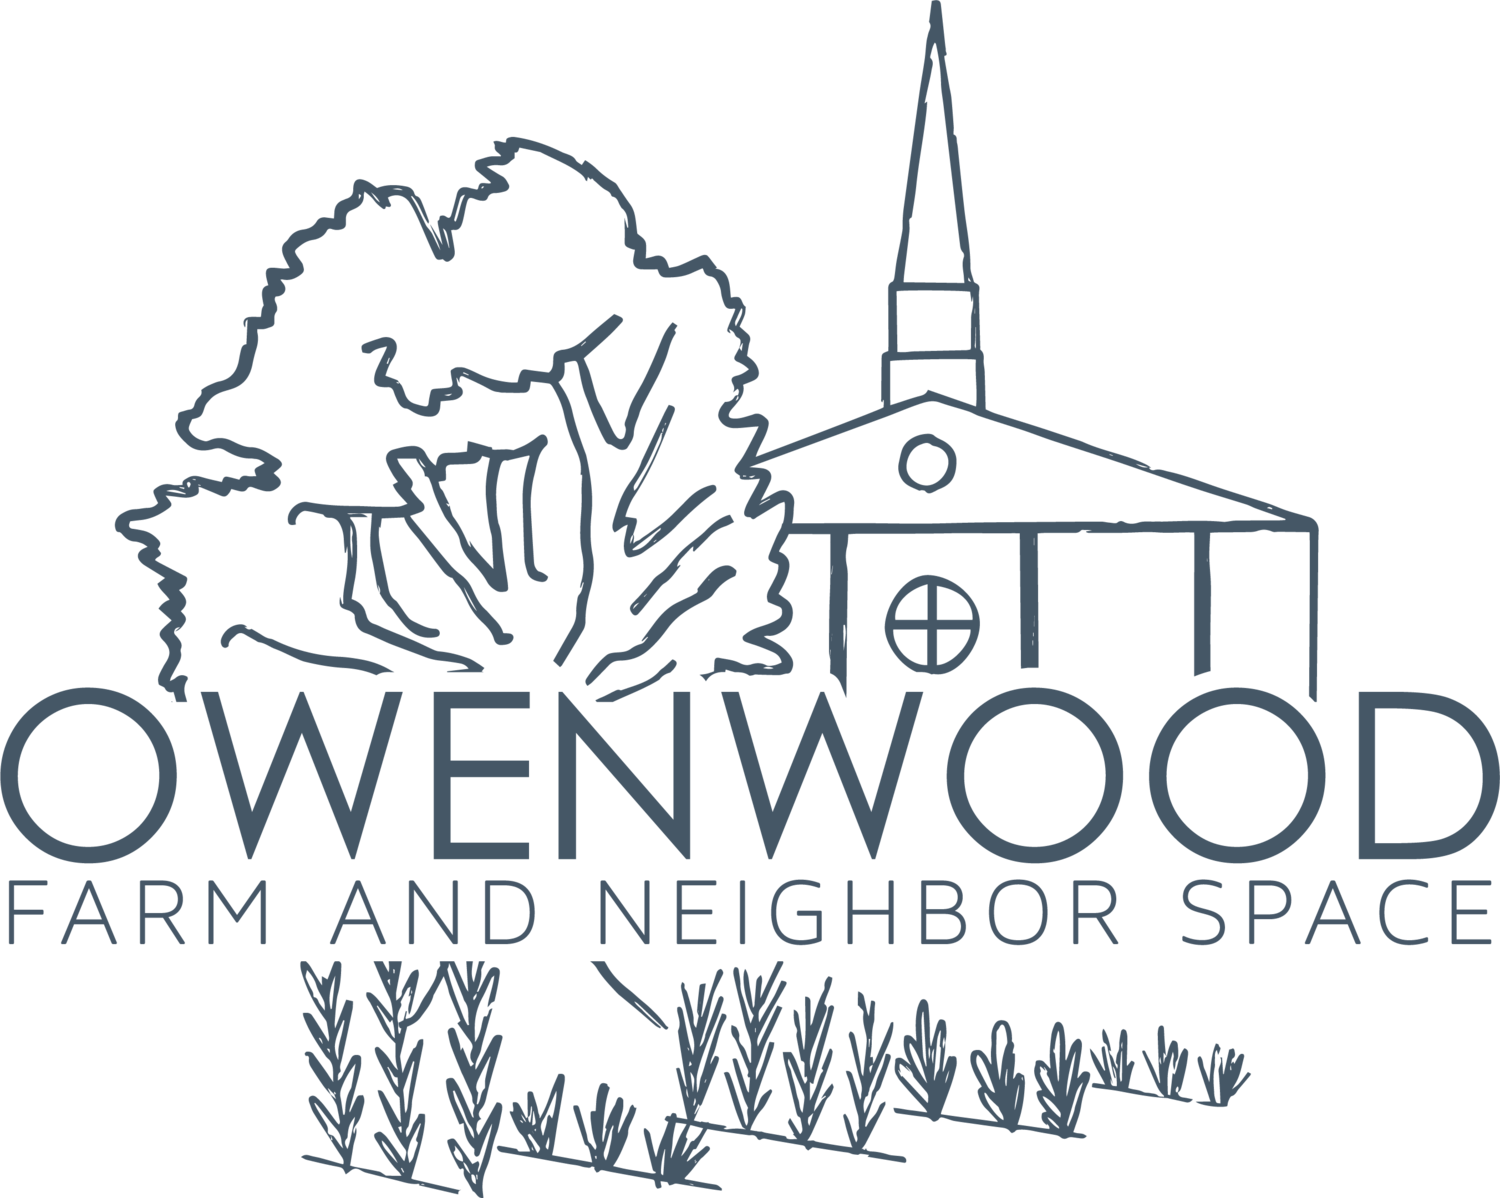 Owenwood Farm & Neighbor Space